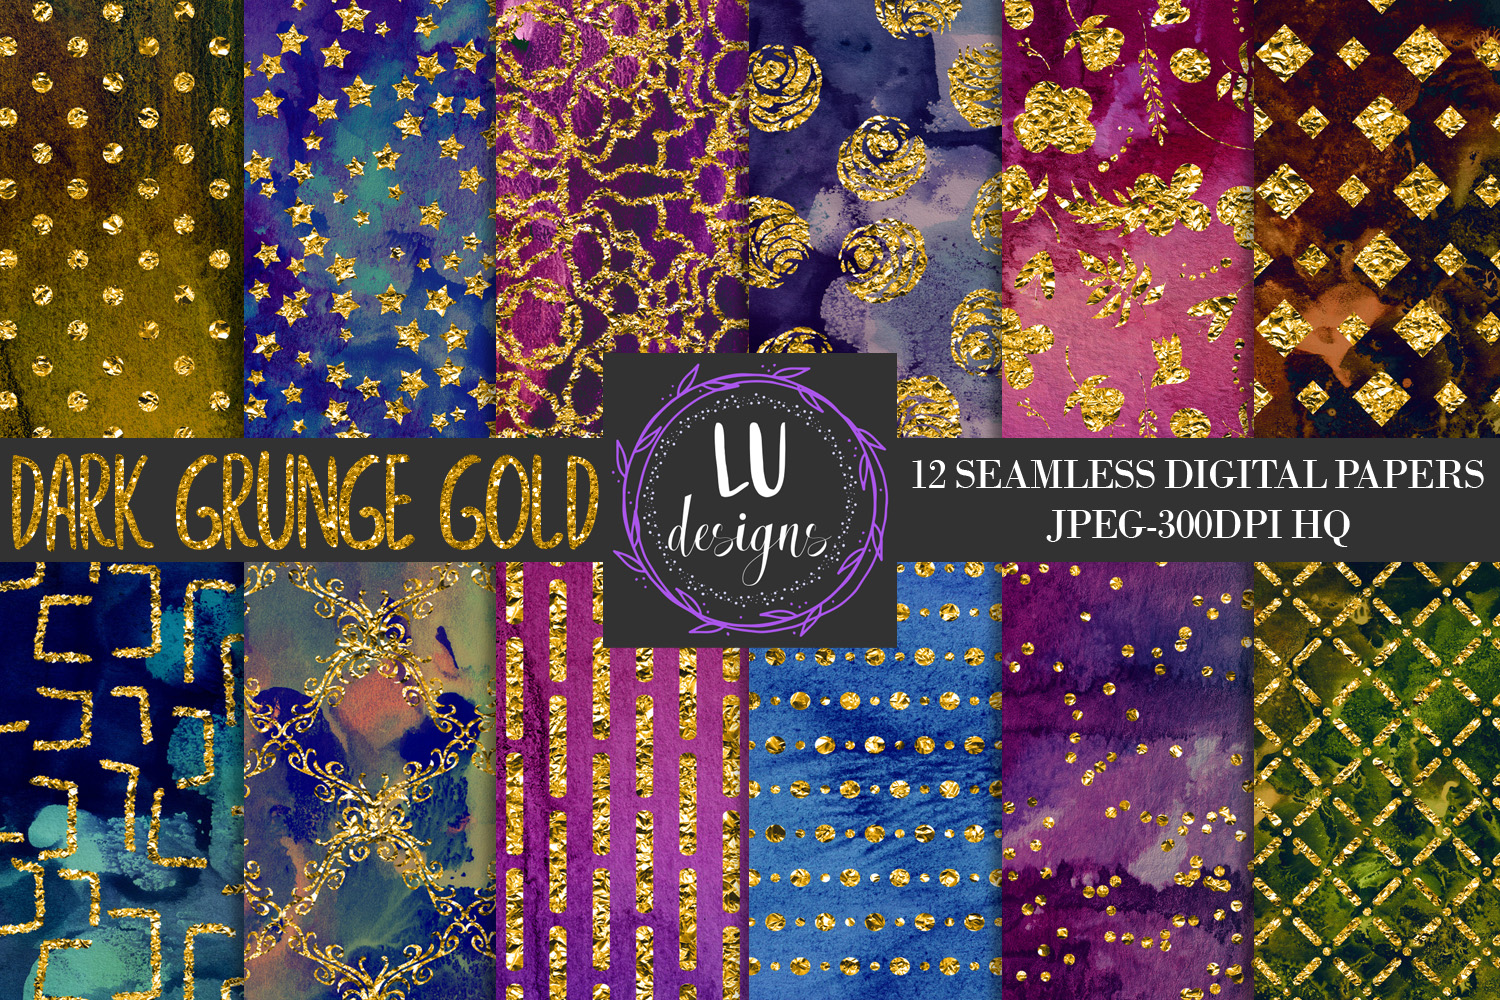 Download Free Grunge Gold Foil Digital Papers Textures Graphic By Lu Designs for Cricut Explore, Silhouette and other cutting machines.